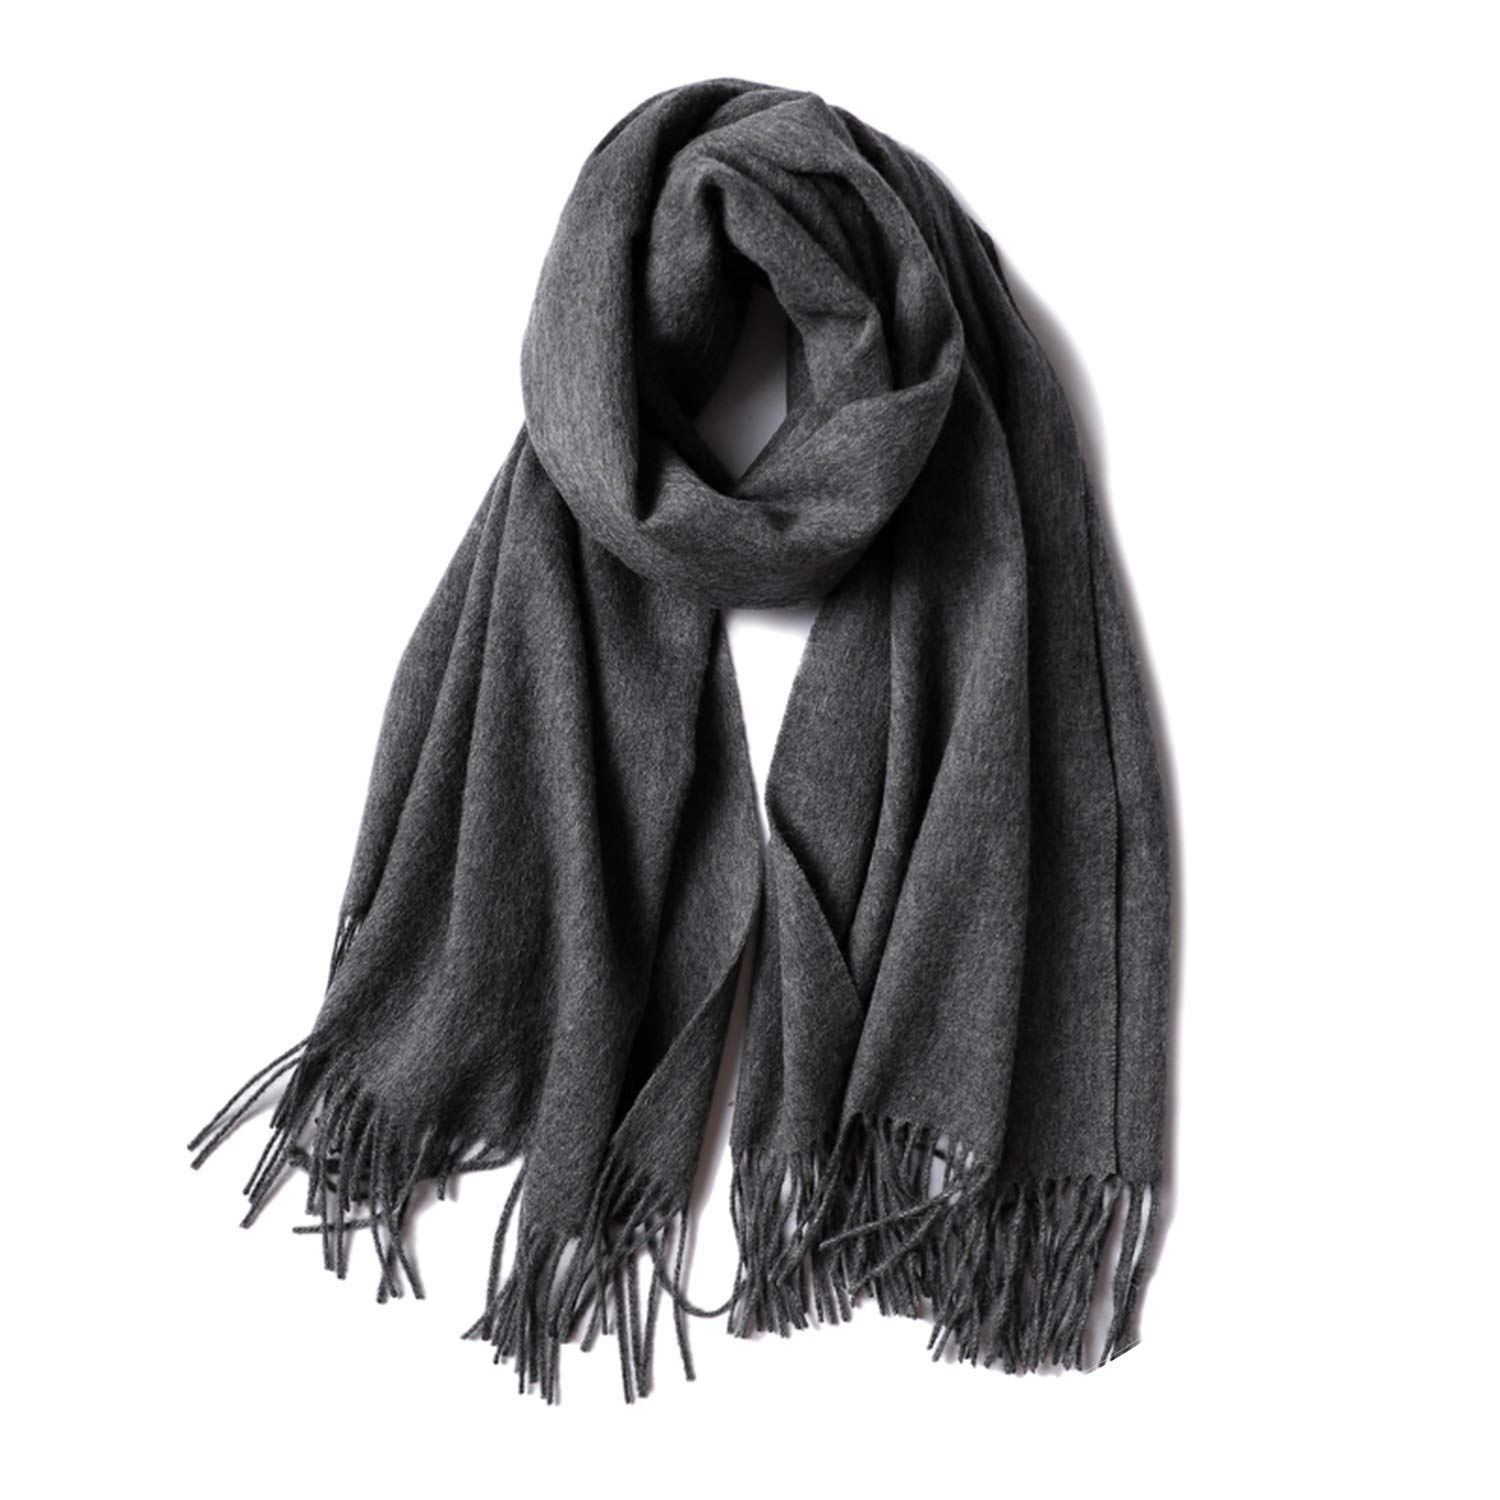 C24 winter women scarf lady shawls and wraps high thick warm neck head pashmina blanket,c6